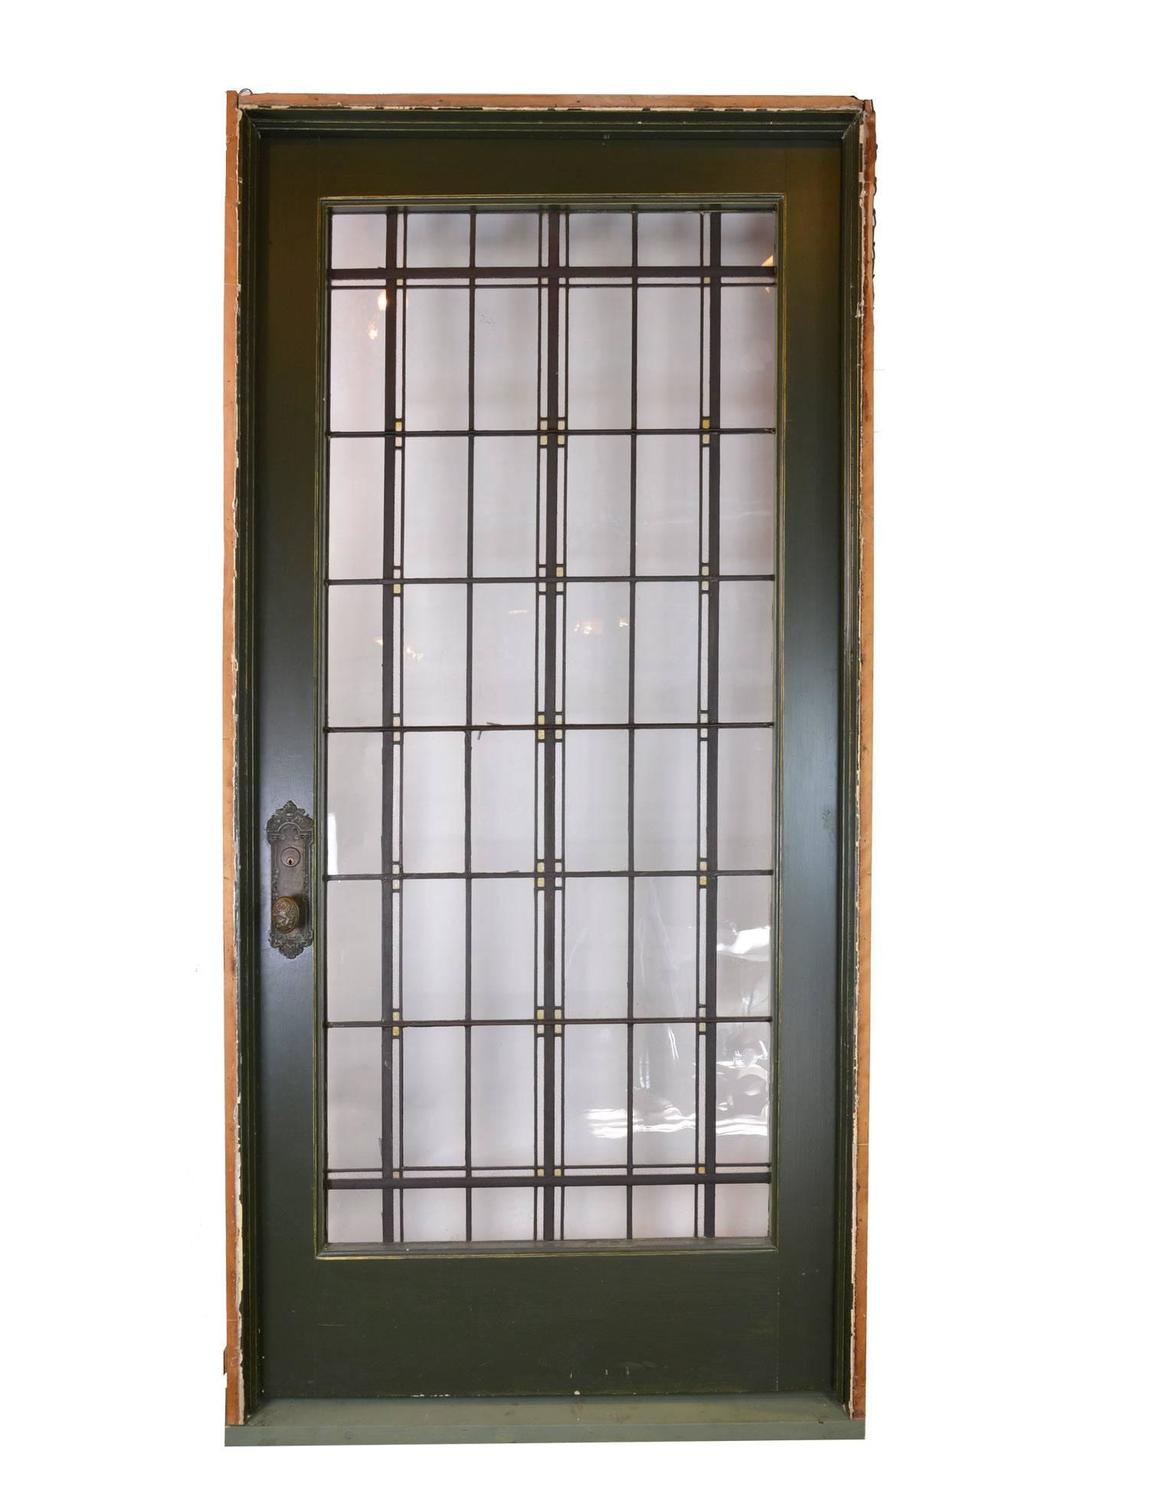 1500 #935F38 Tudor Leaded Glass Entry Door With Original Antwerp Lion Knob Set  picture/photo Leaded Glass Exterior Doors 40291149